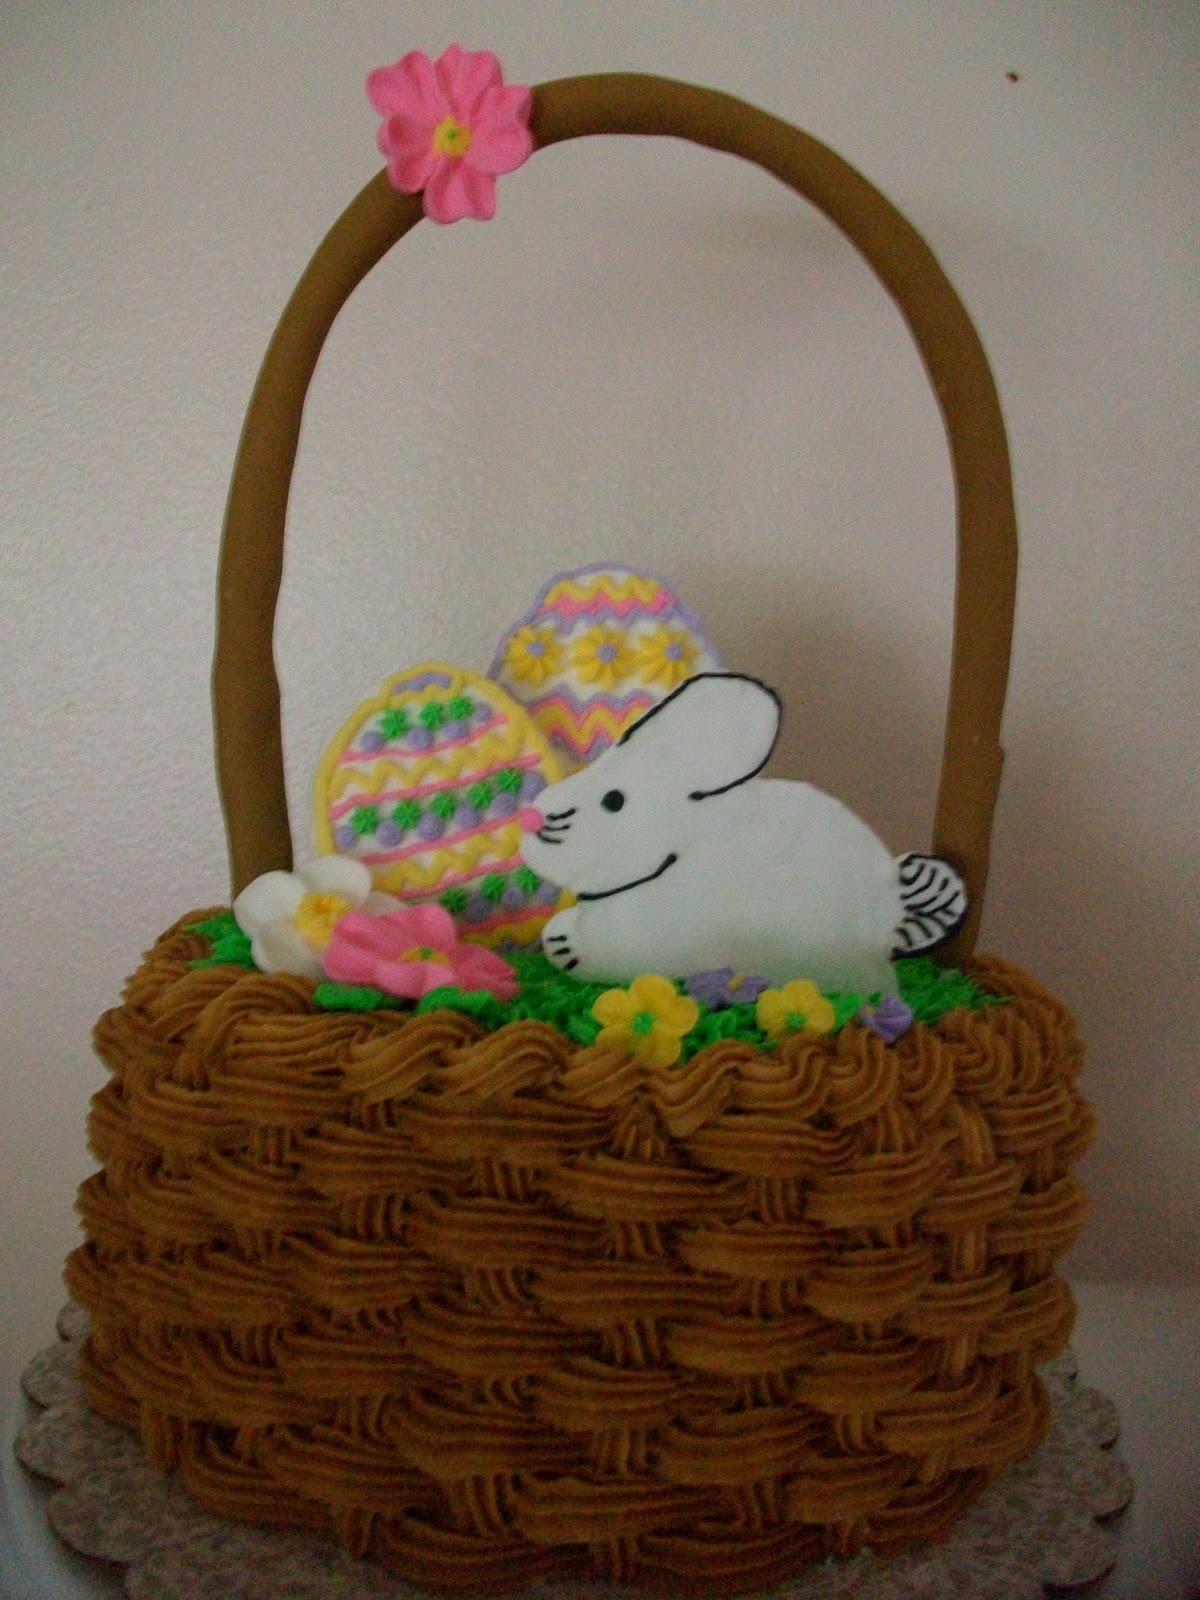 How To Make A Basket Of Flowers Cake : Cakes by shameka easter basket cake step